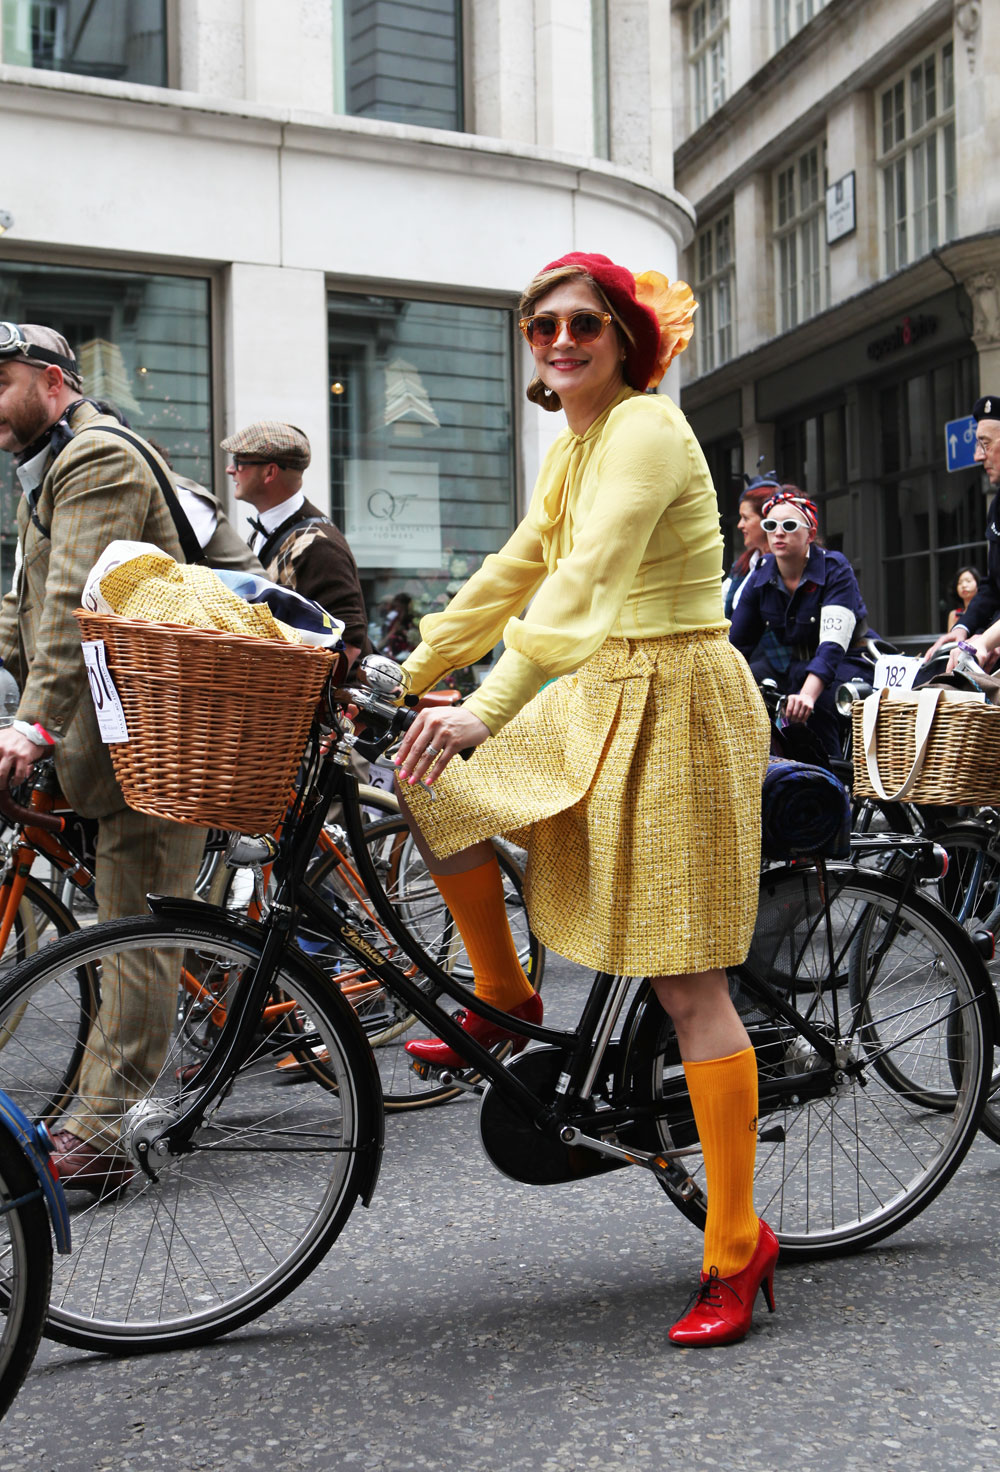 Tweed-Run-London-2014-Bike-Pretty-Most-Dashing-Dame-Bike-Fashion-Photo-Kelly-Miller-6